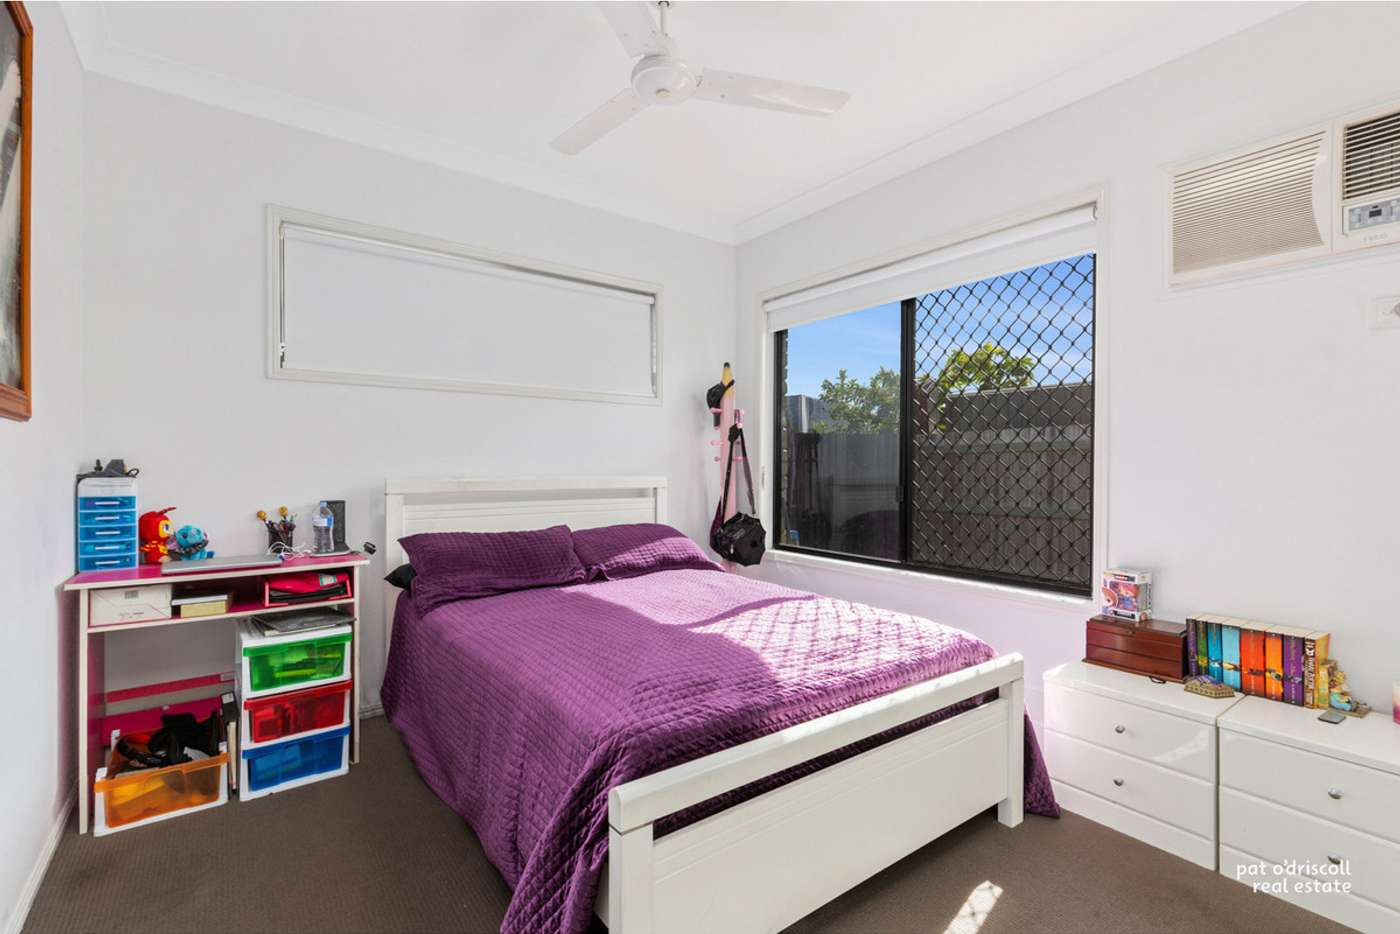 Sixth view of Homely house listing, 10 Mistletoe Avenue, Norman Gardens QLD 4701